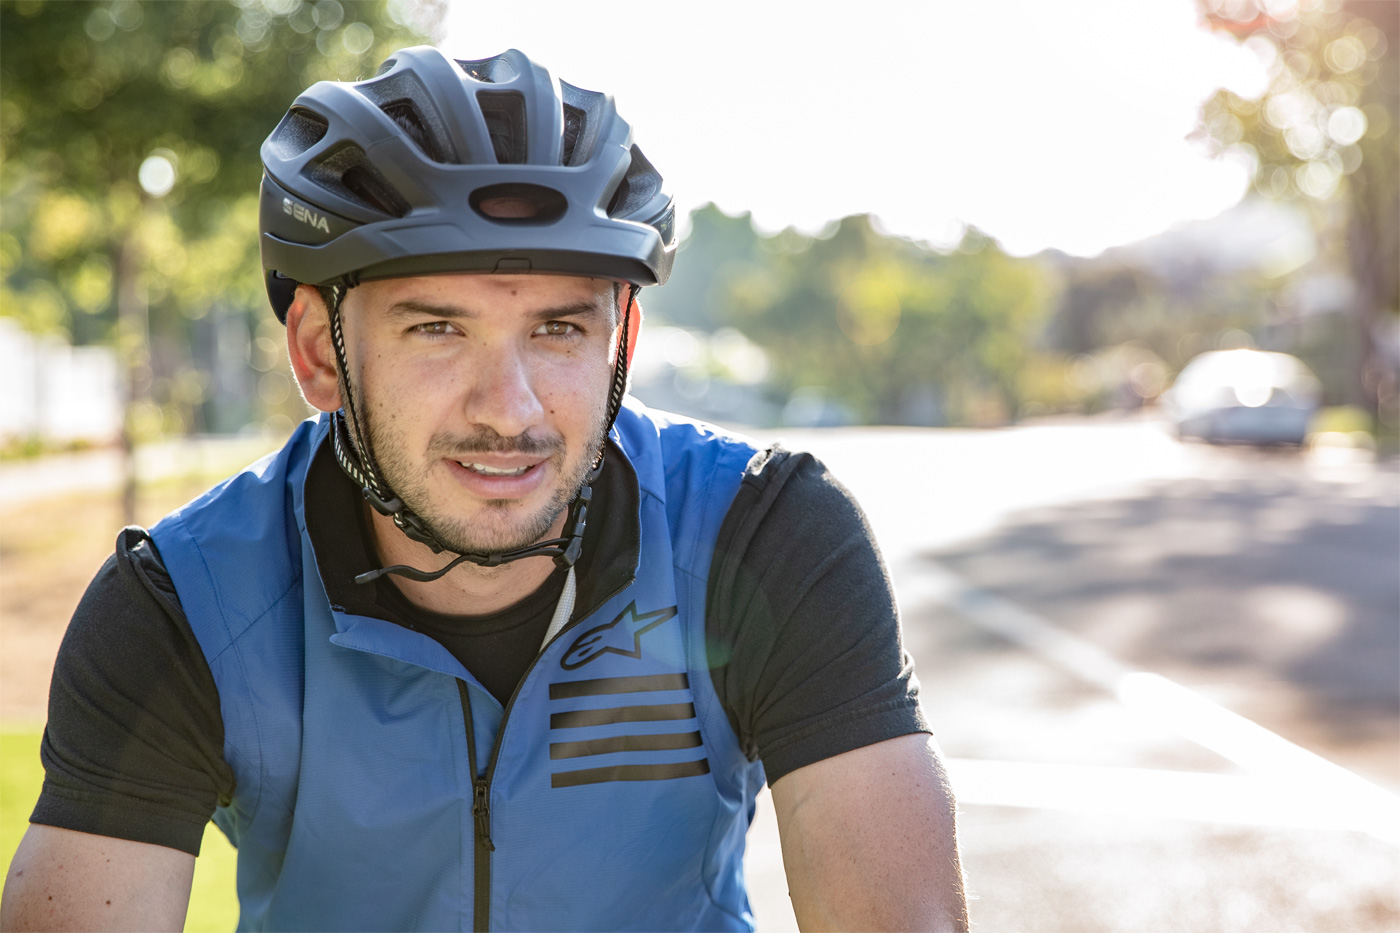 R1 Smart Cycling Helmet